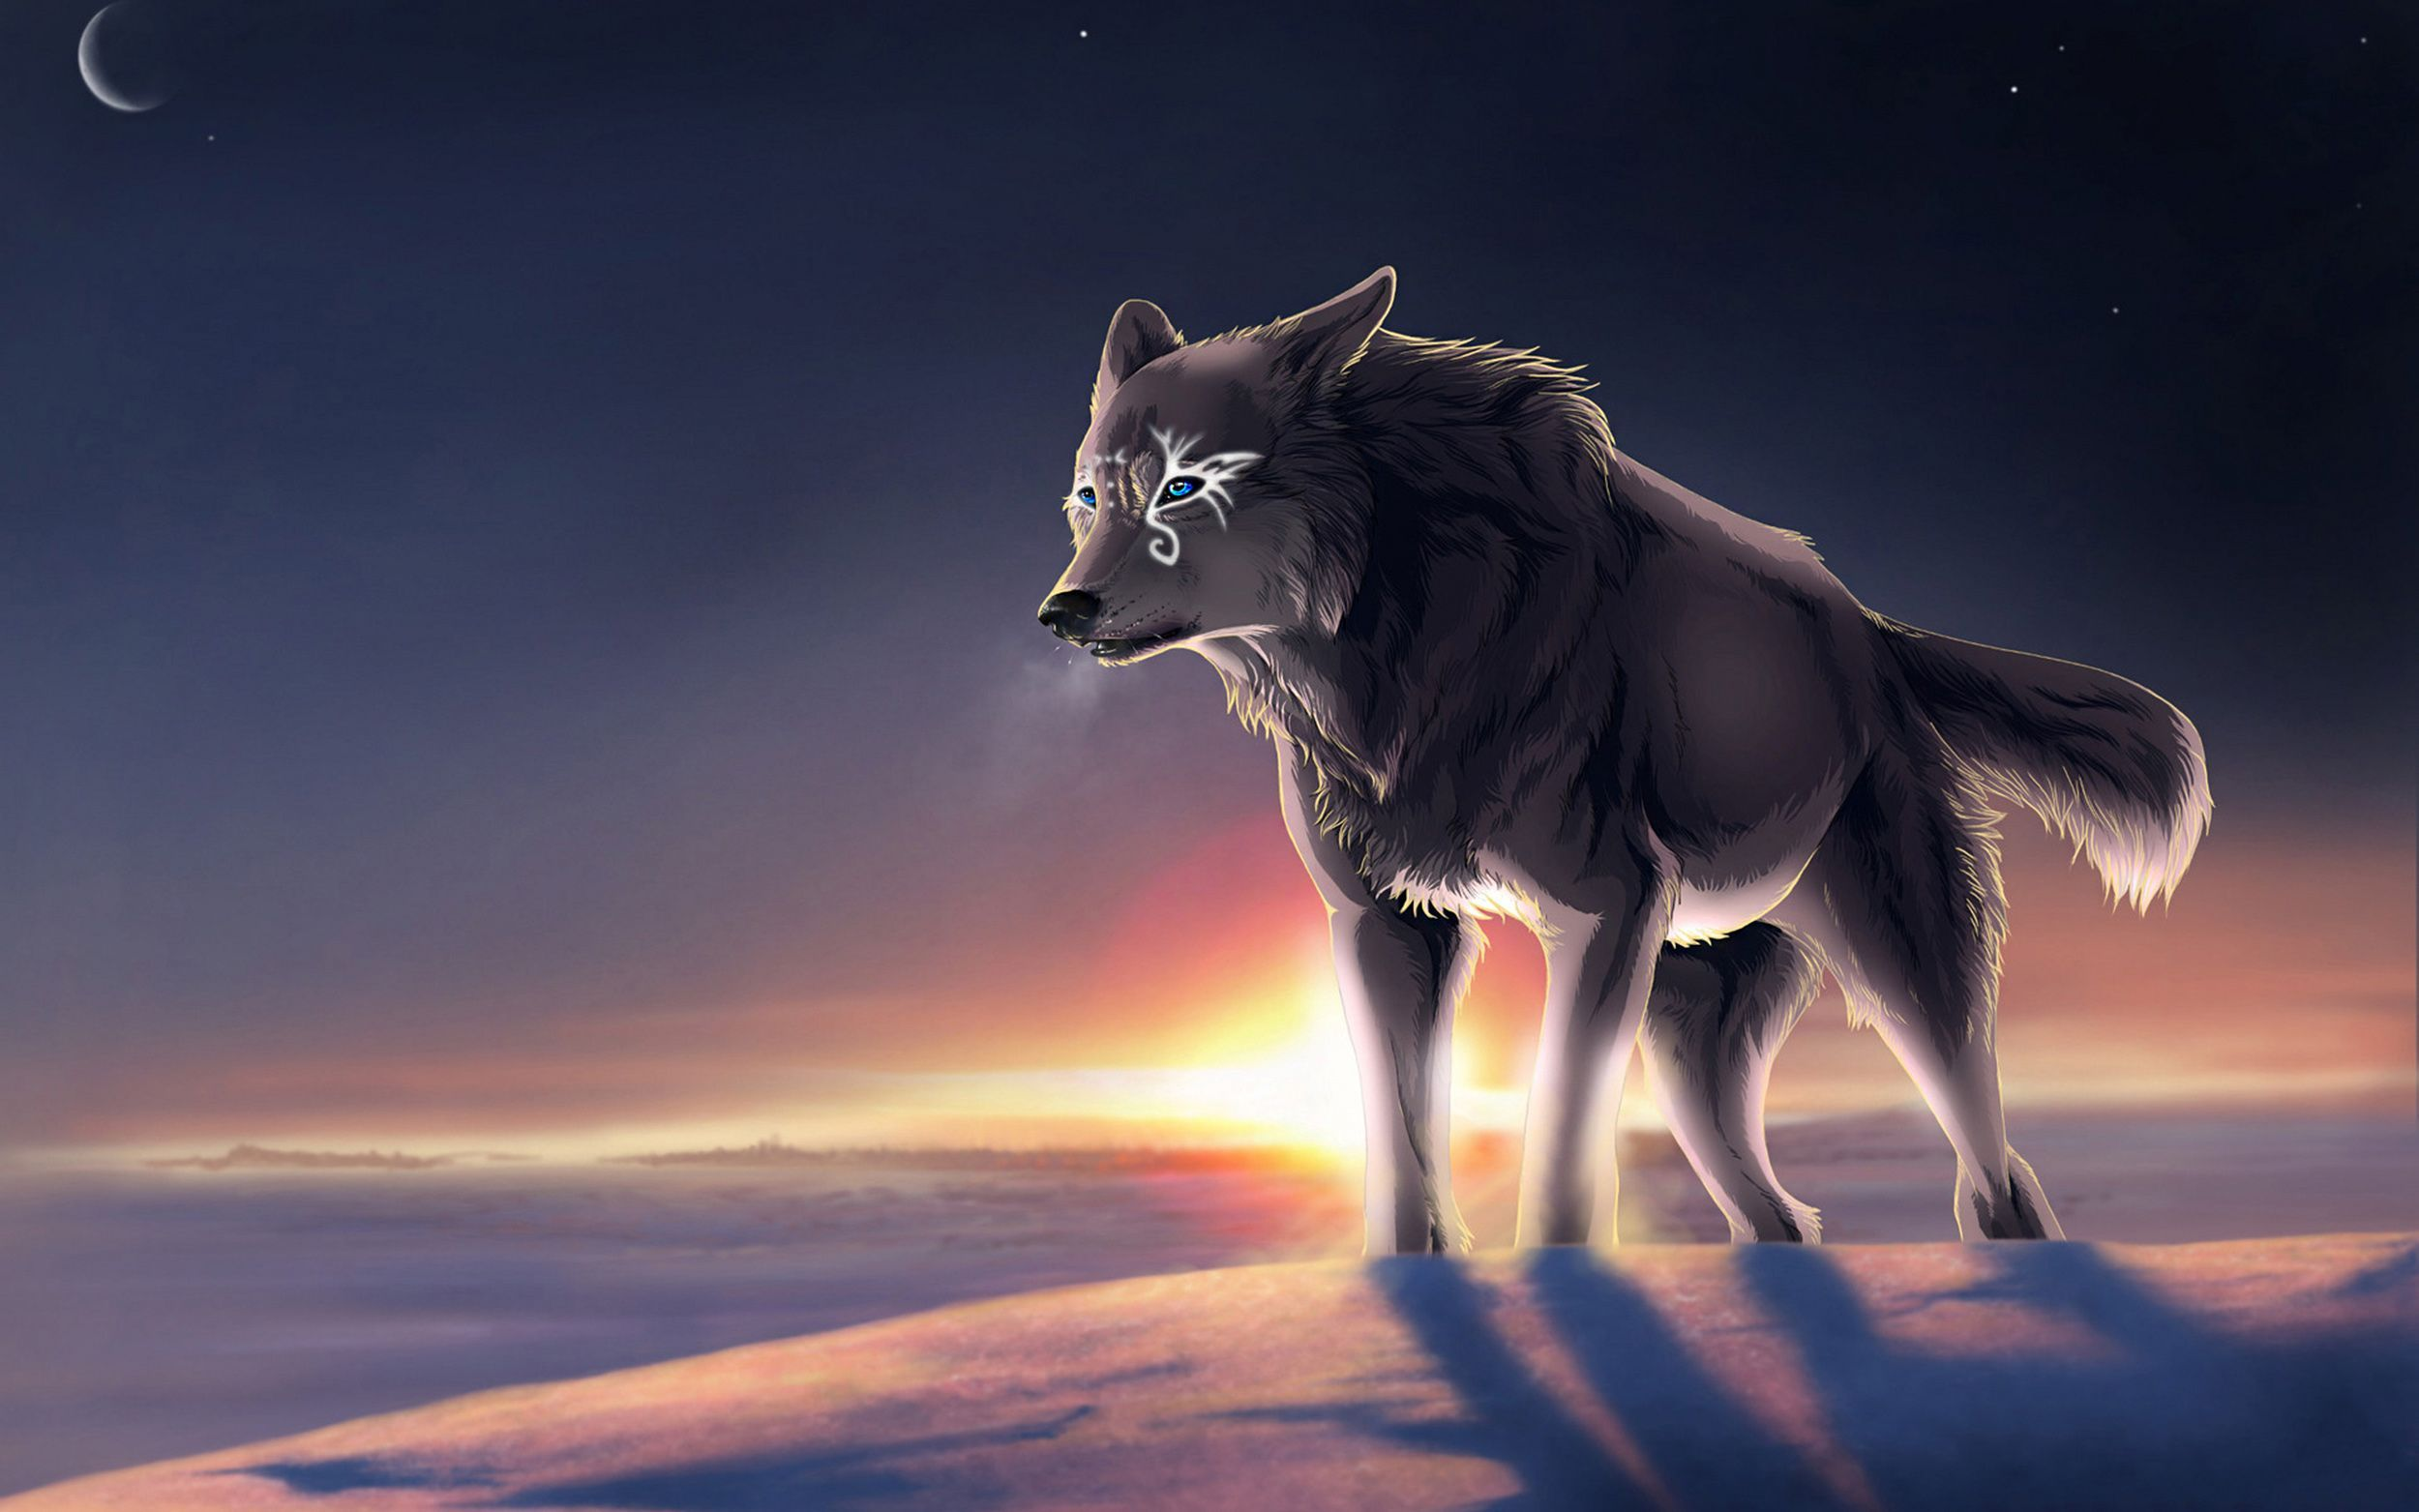 Cute Anime Wolf Wallpapers Top Free Cute Anime Wolf Backgrounds Wallpaperaccess